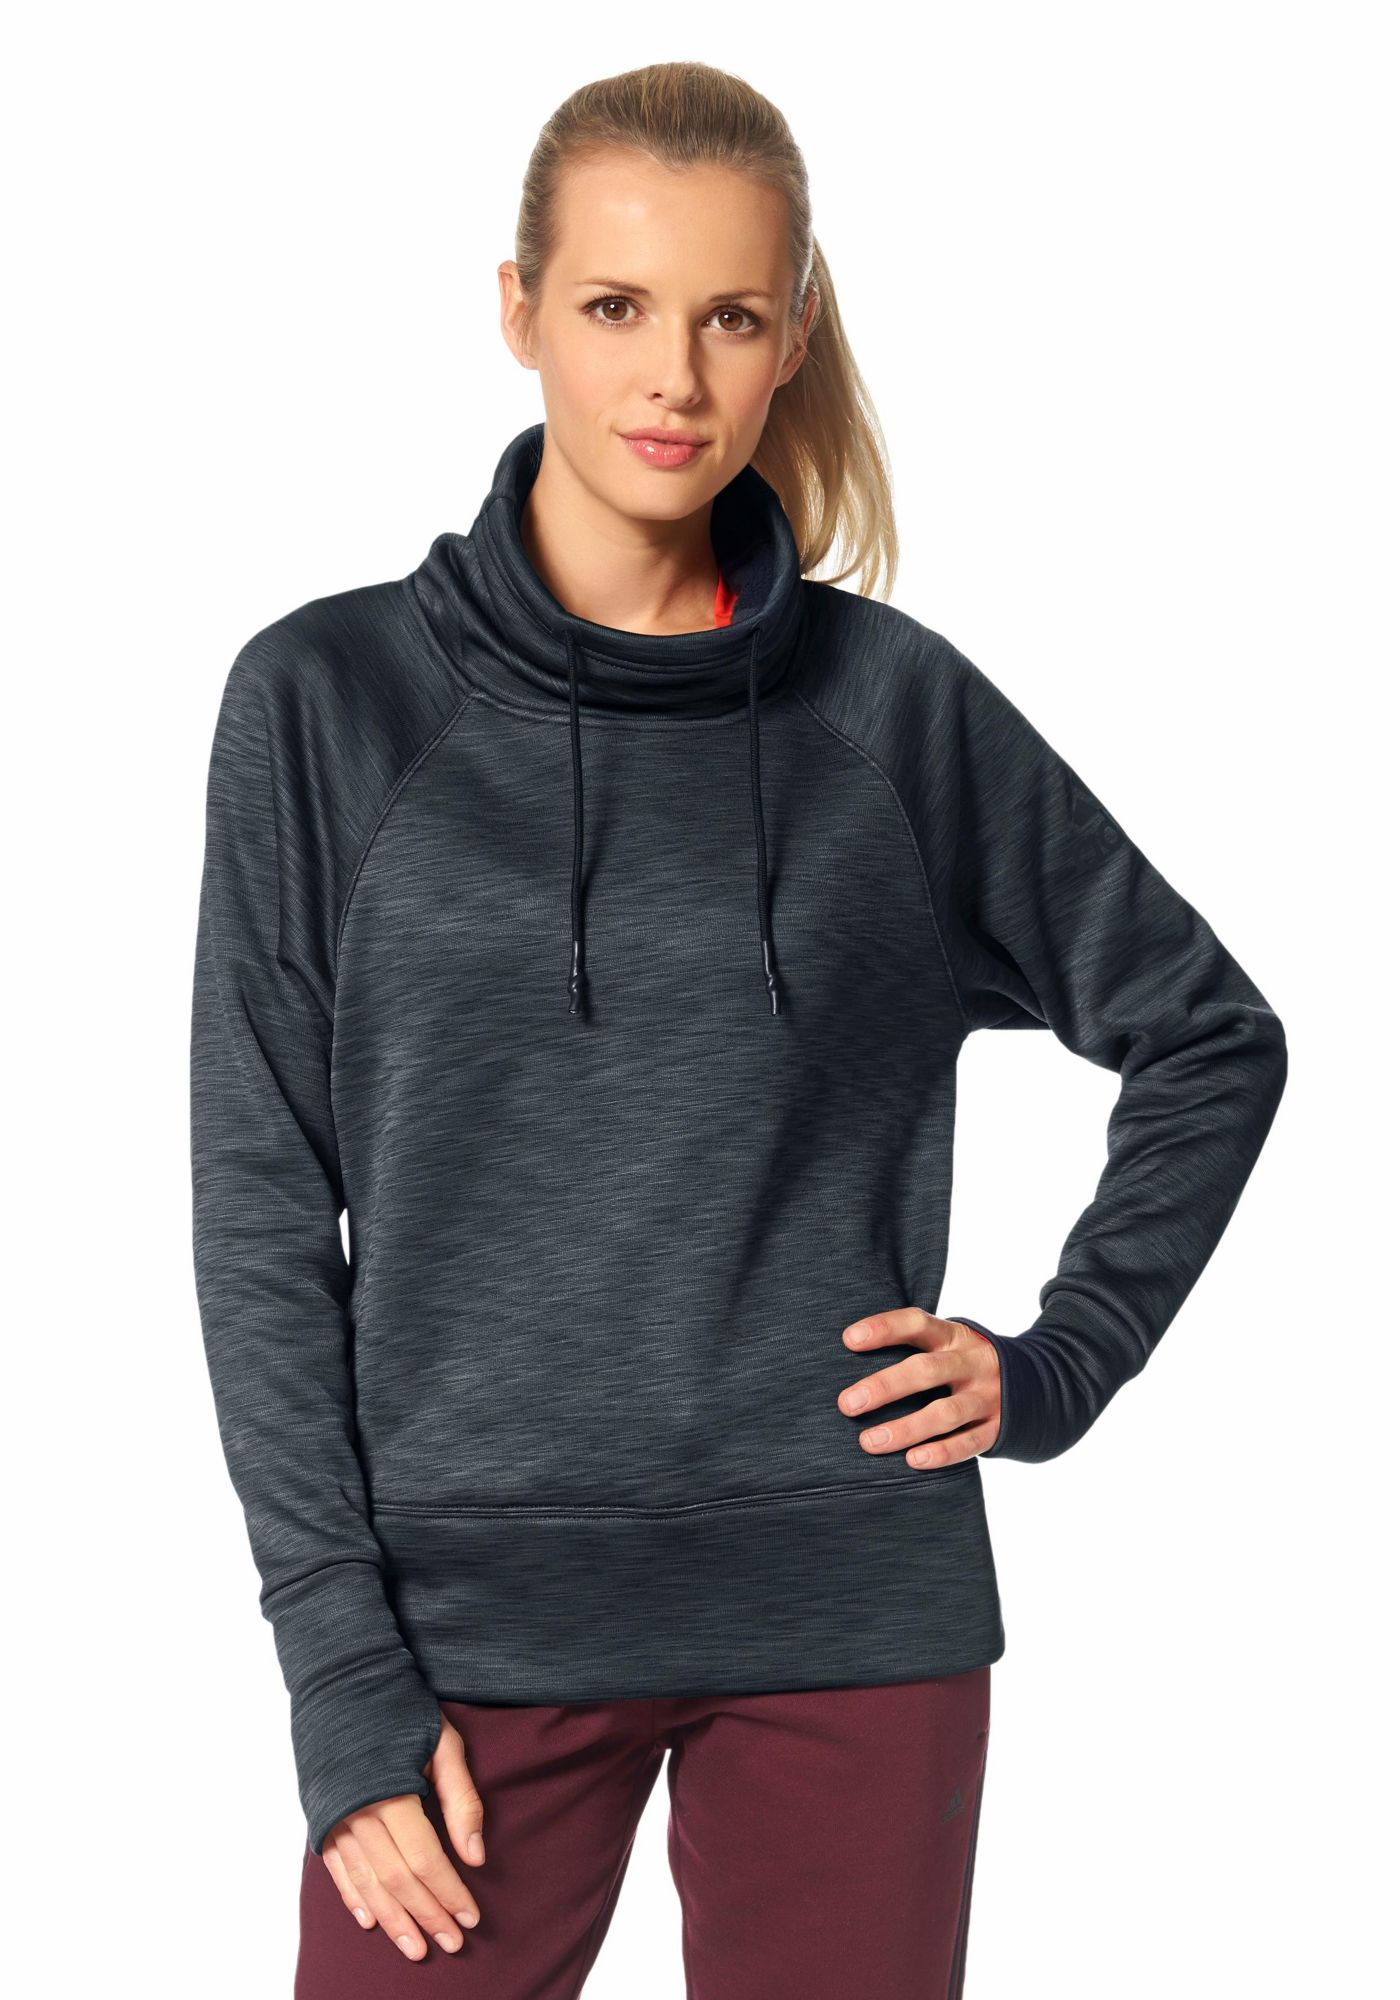 ADIDAS PERFORMANCE adidas Performance CLIMAHEAT SWEATER Funktions-Sweatshirt